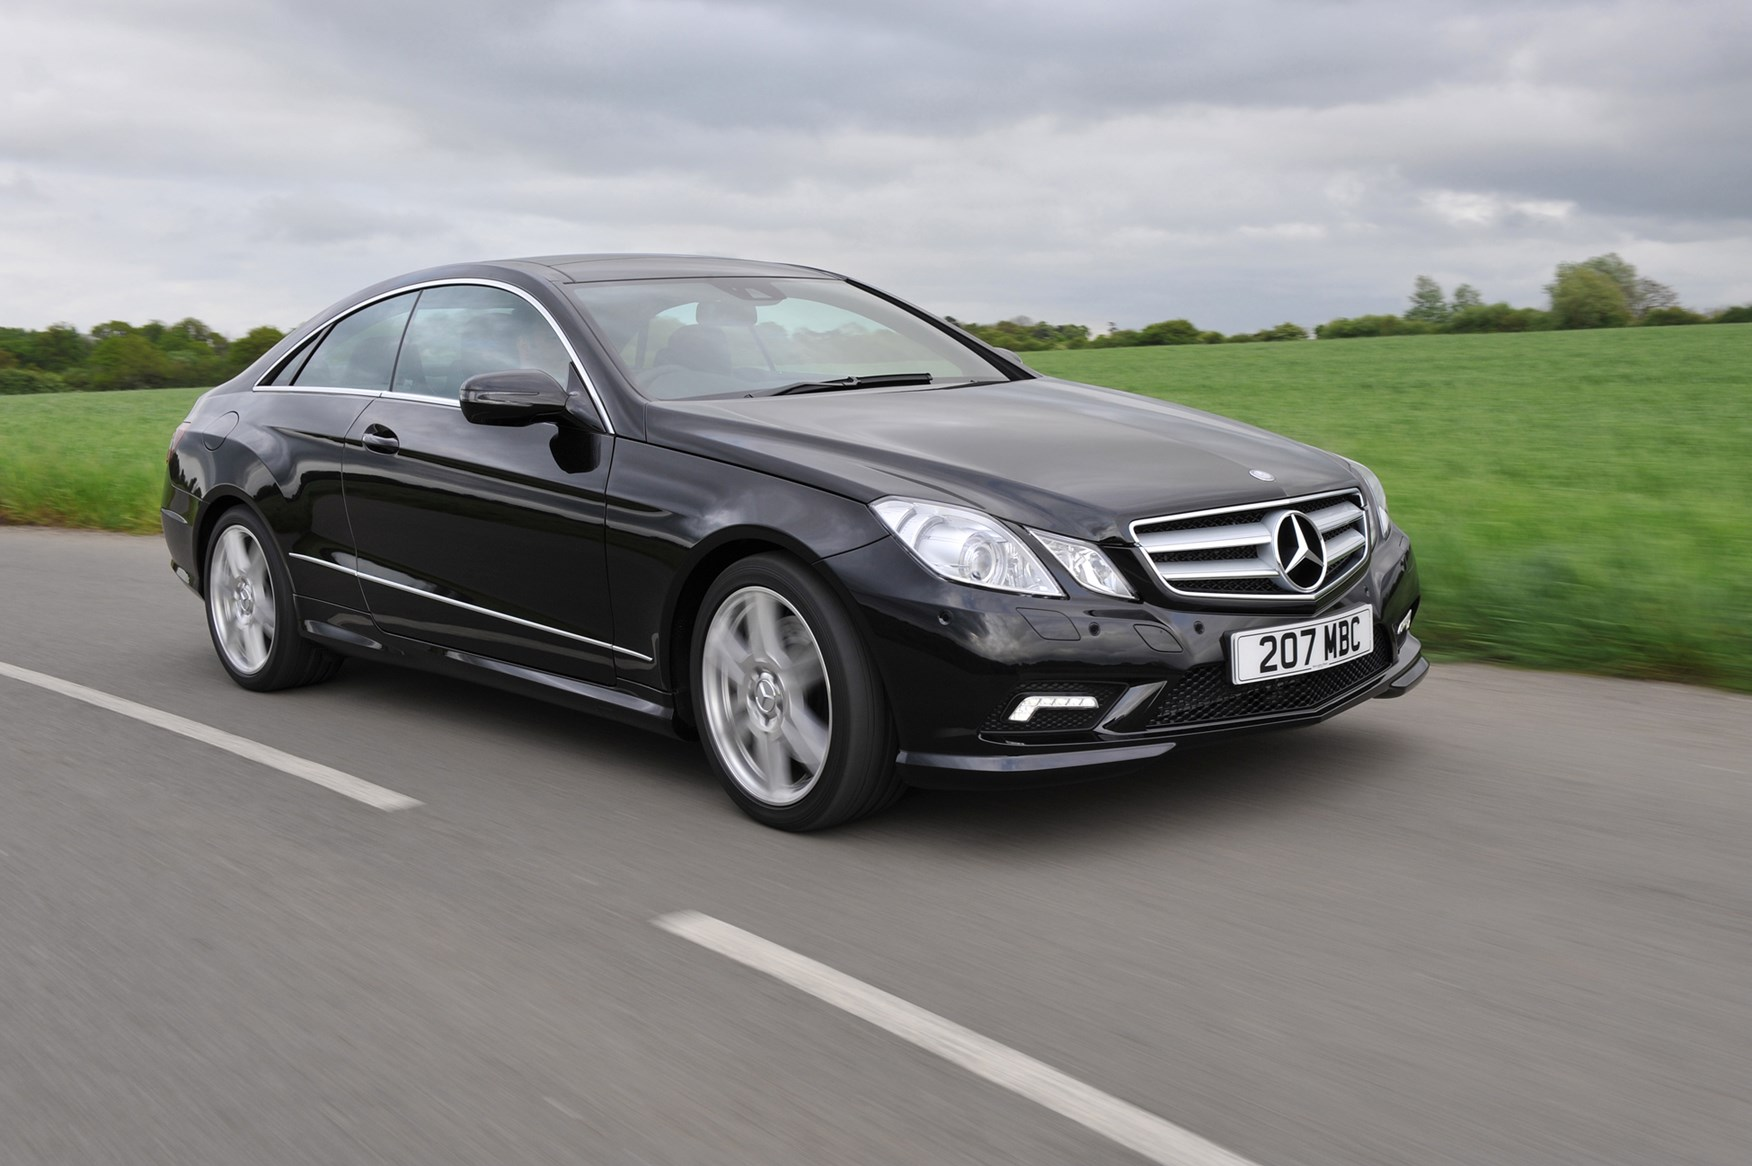 mercedes benz e class coup 2009 2017 running costs parkers. Black Bedroom Furniture Sets. Home Design Ideas